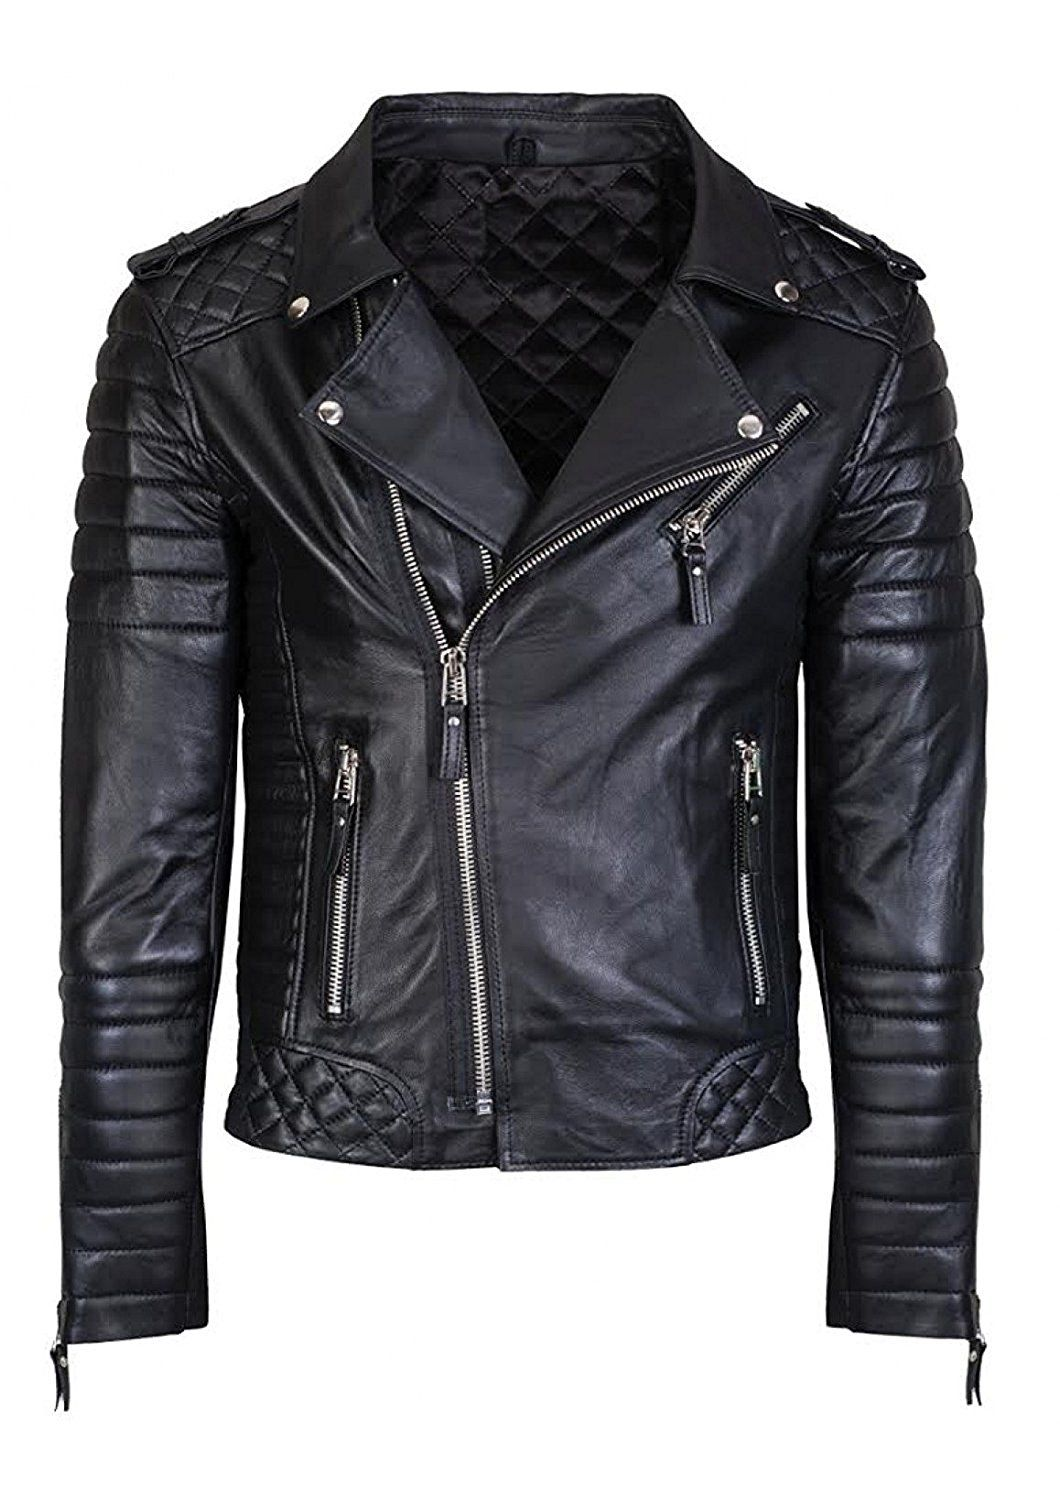 Black Mens Diamond Quilted Leather Jacket Real Lambskin Leather